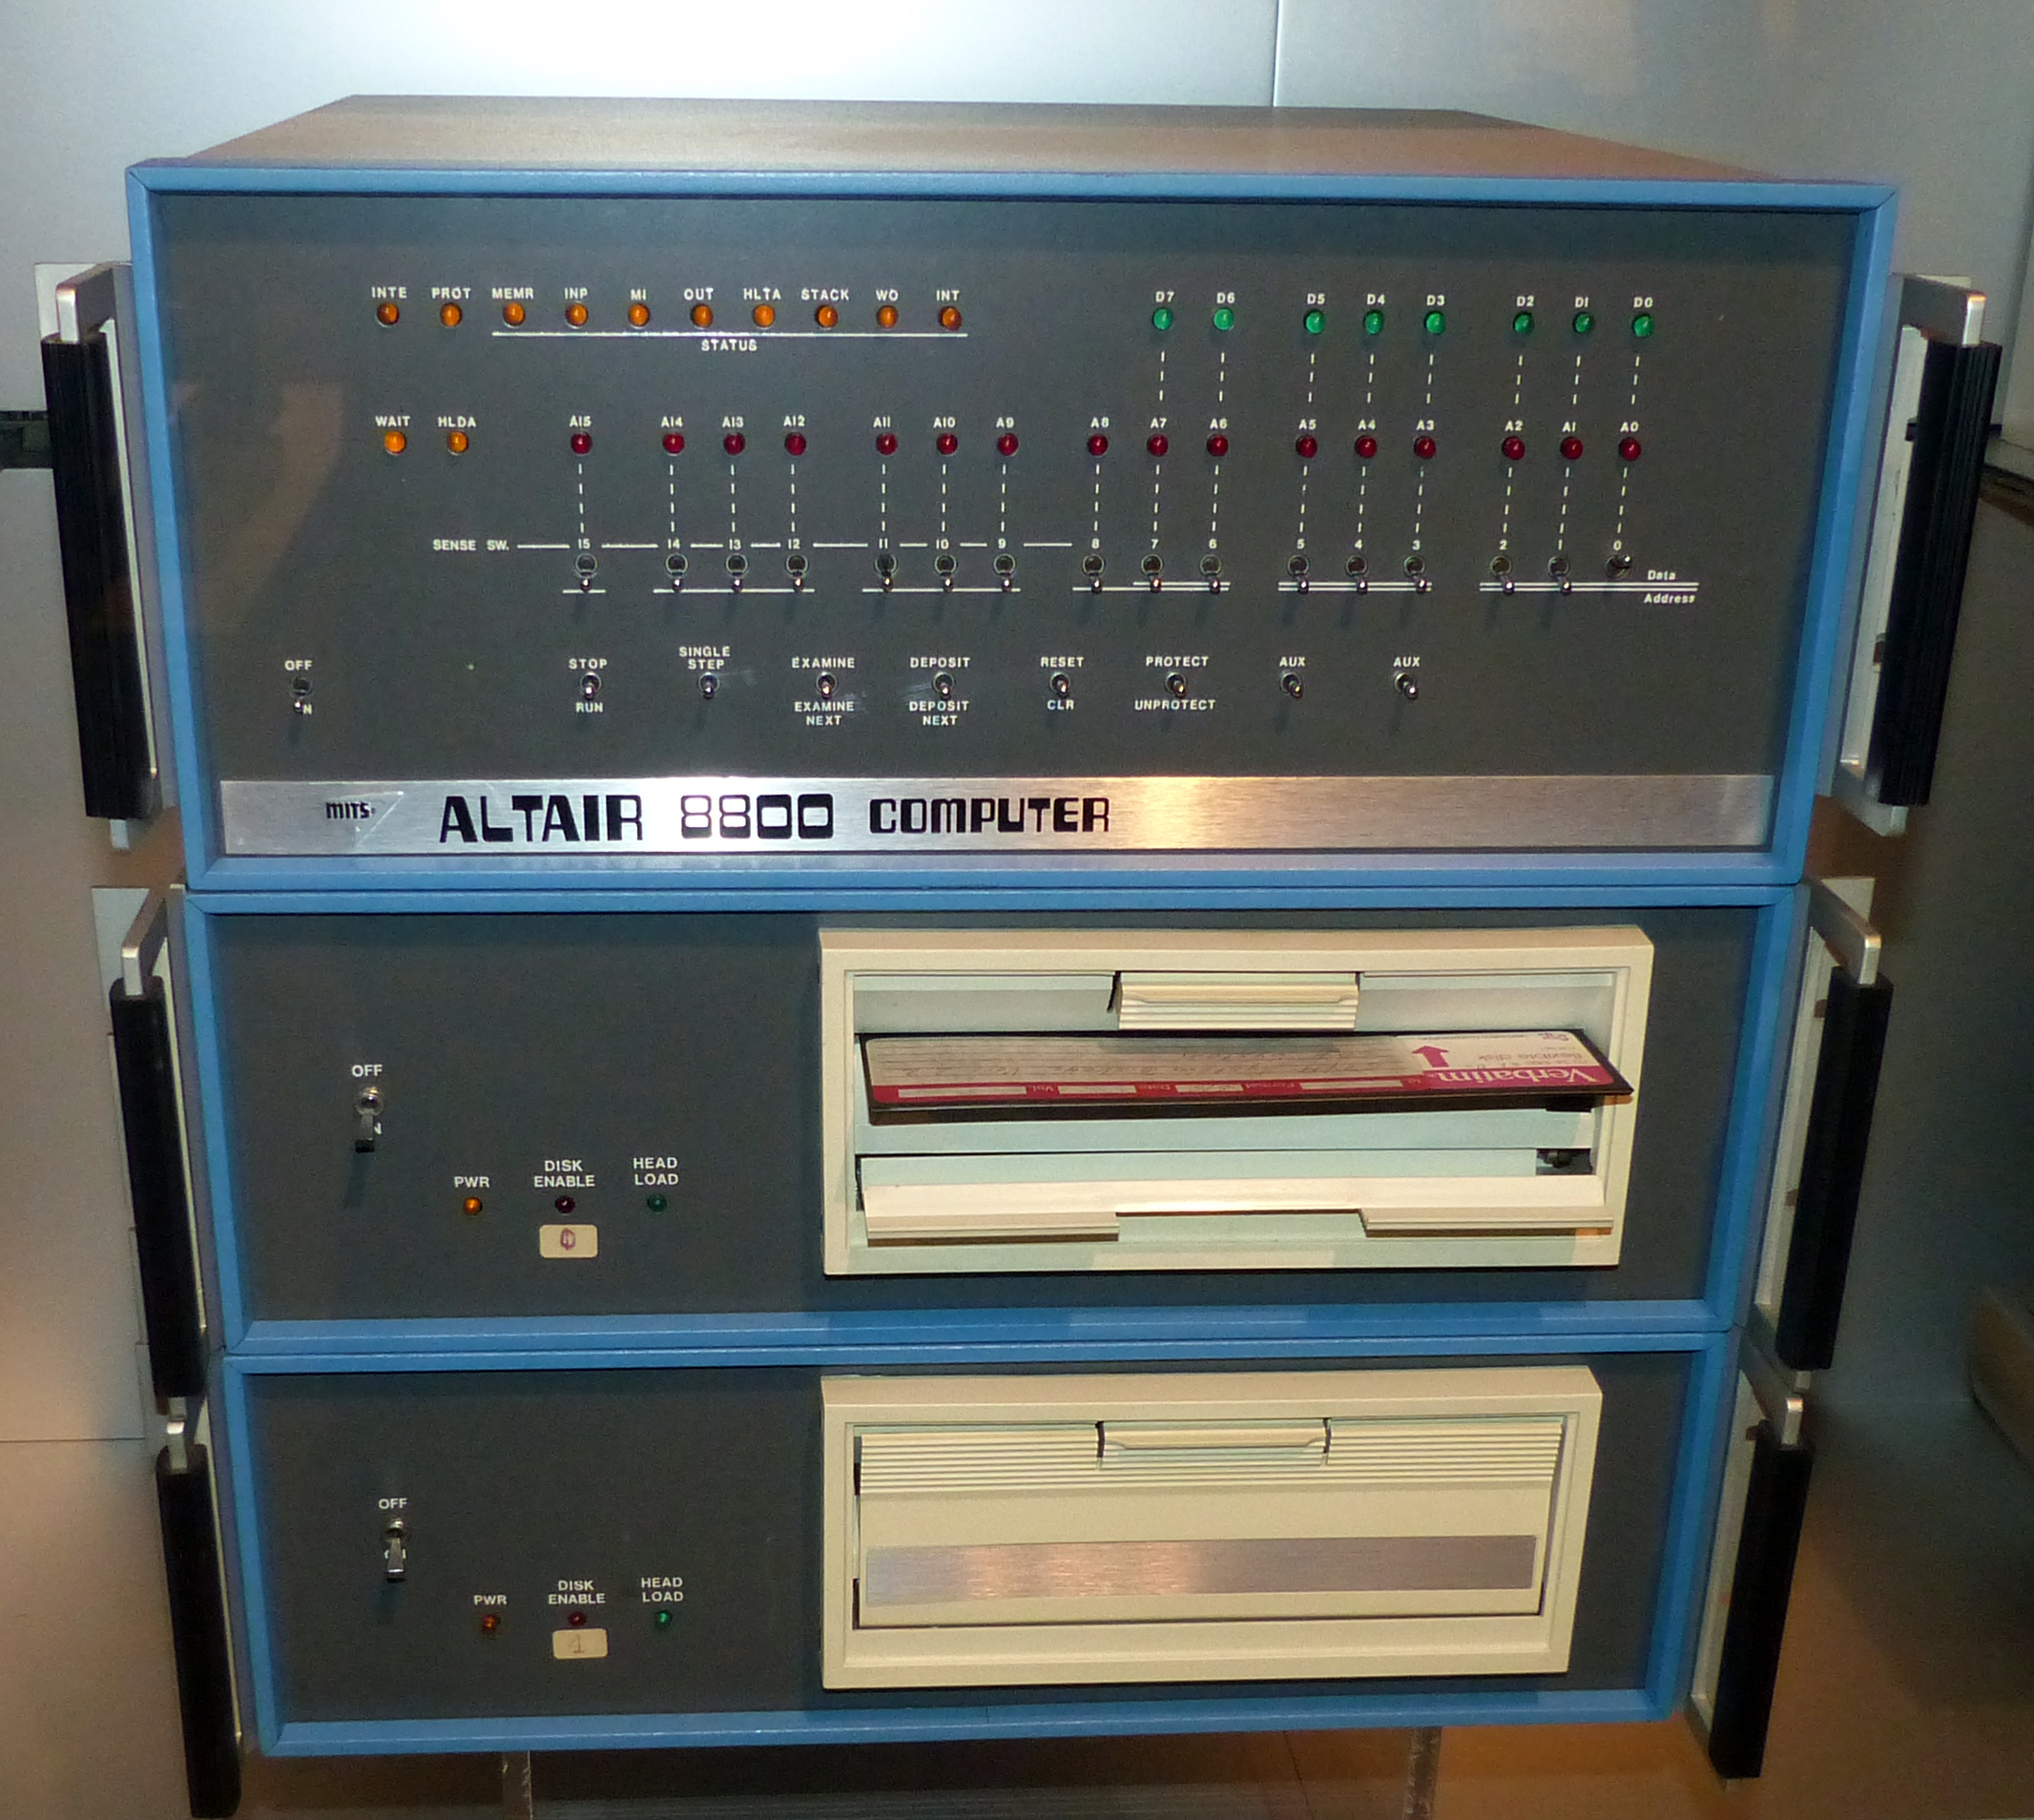 Altair 8800 – Wikipedia